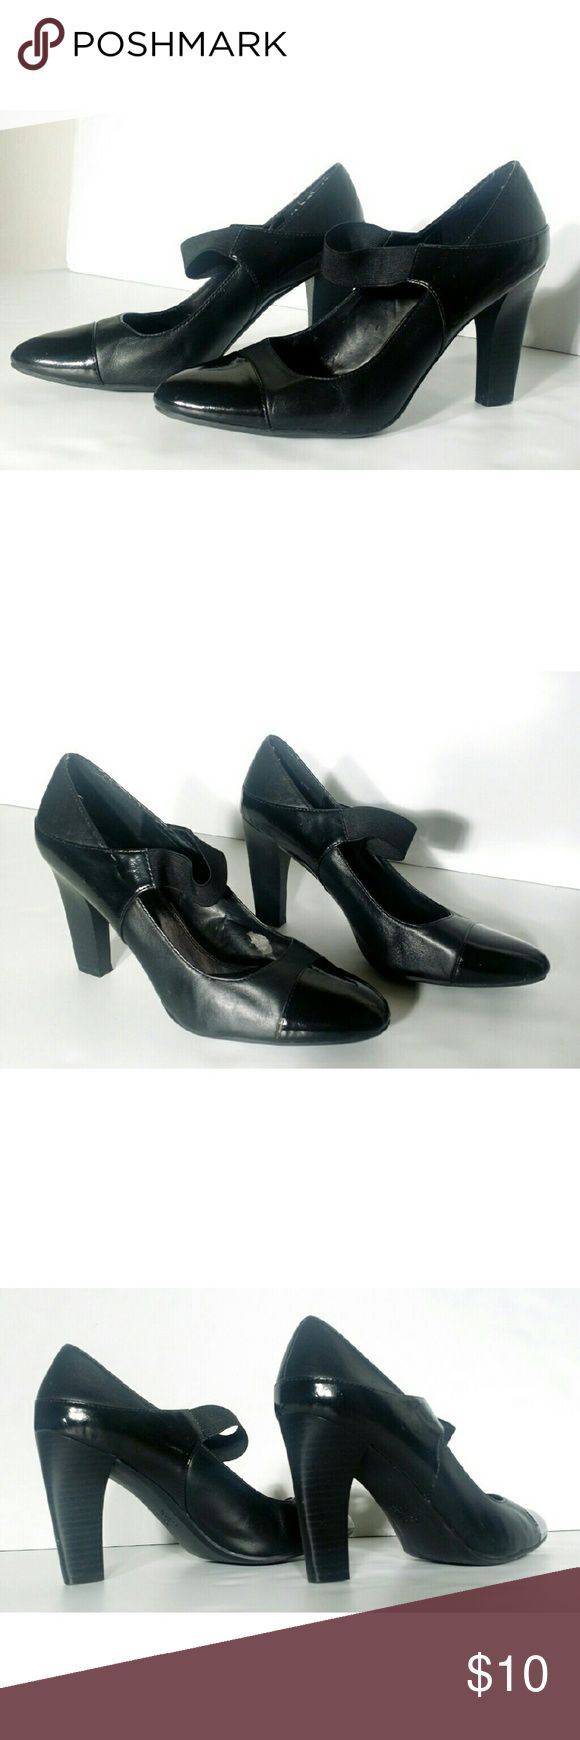 Simply Vera Wang Womens Black Leather Heels Tear inside but not noticeable once you wear it.. Size 8 Very adorable!! Fast shipping!! Simply Vera Vera Wang Shoes Heels